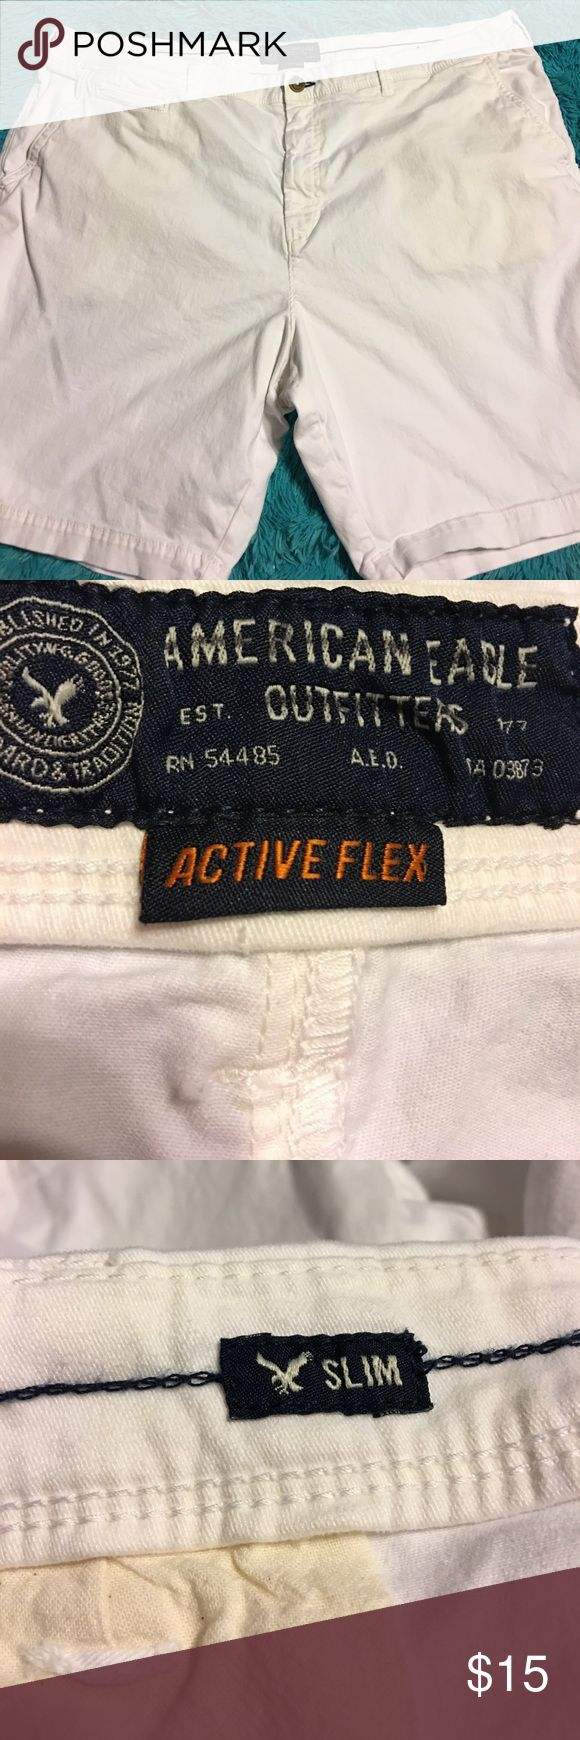 American Eagle men's shorts size 48 Pre-owned American Eagle shorts size 48 men's slim fit American Eagle Outfitters Shorts Flat Front